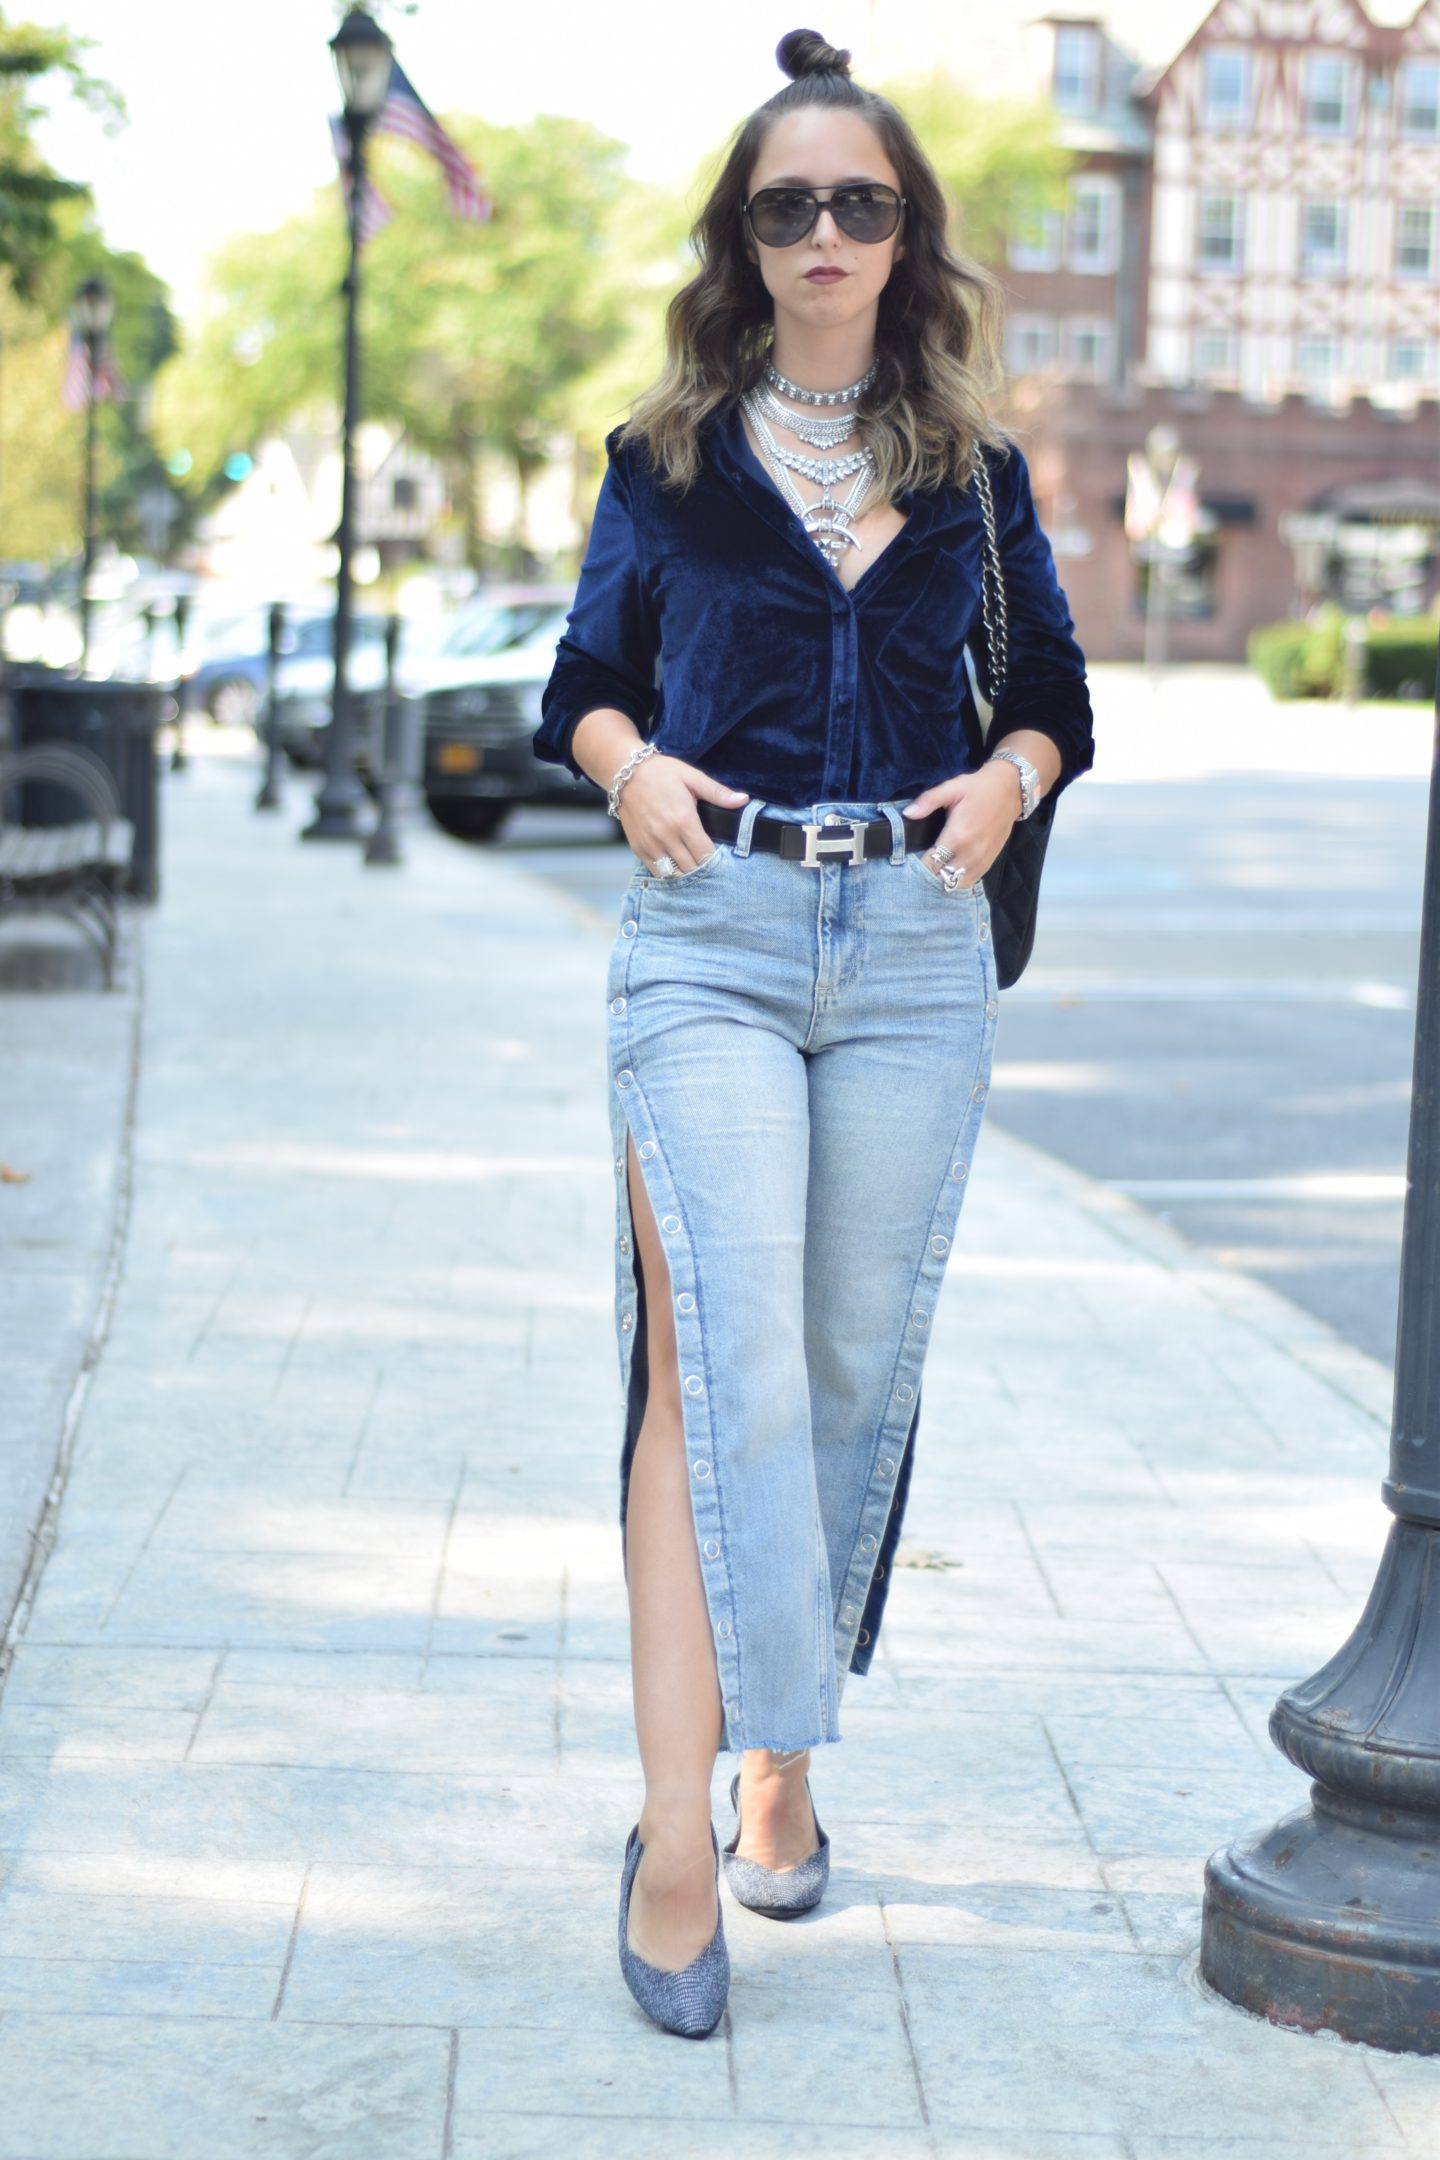 simply by simone-street style-blogger-outfit